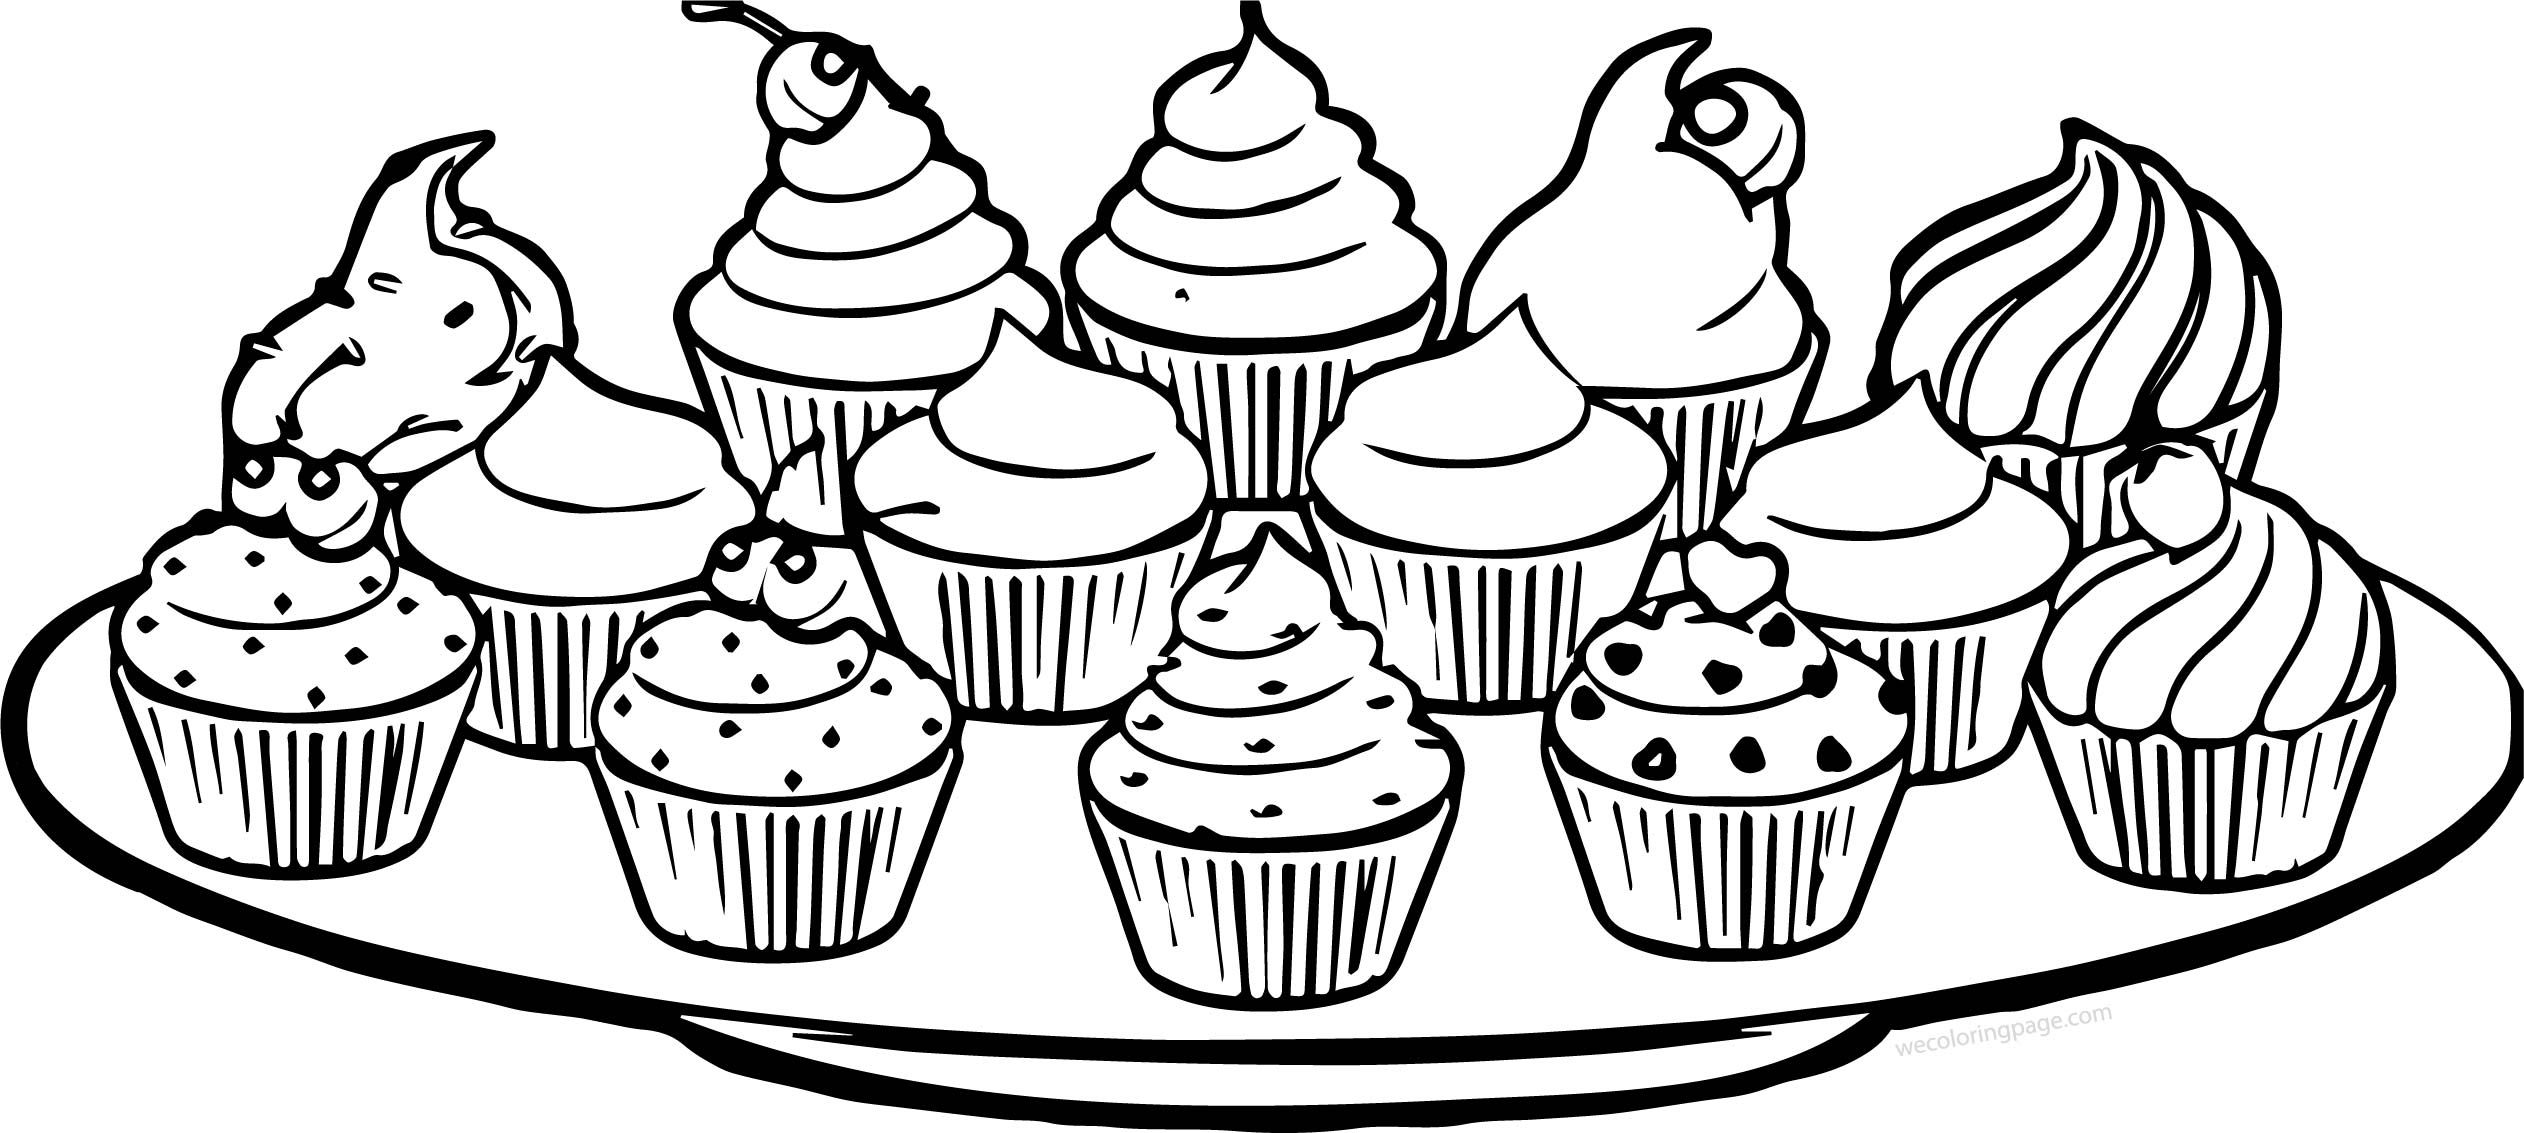 Nice Plate Of Cupcakes Coloring Page Cupcake Coloring Pages Shopkins Colouring Pages Coloring Pages